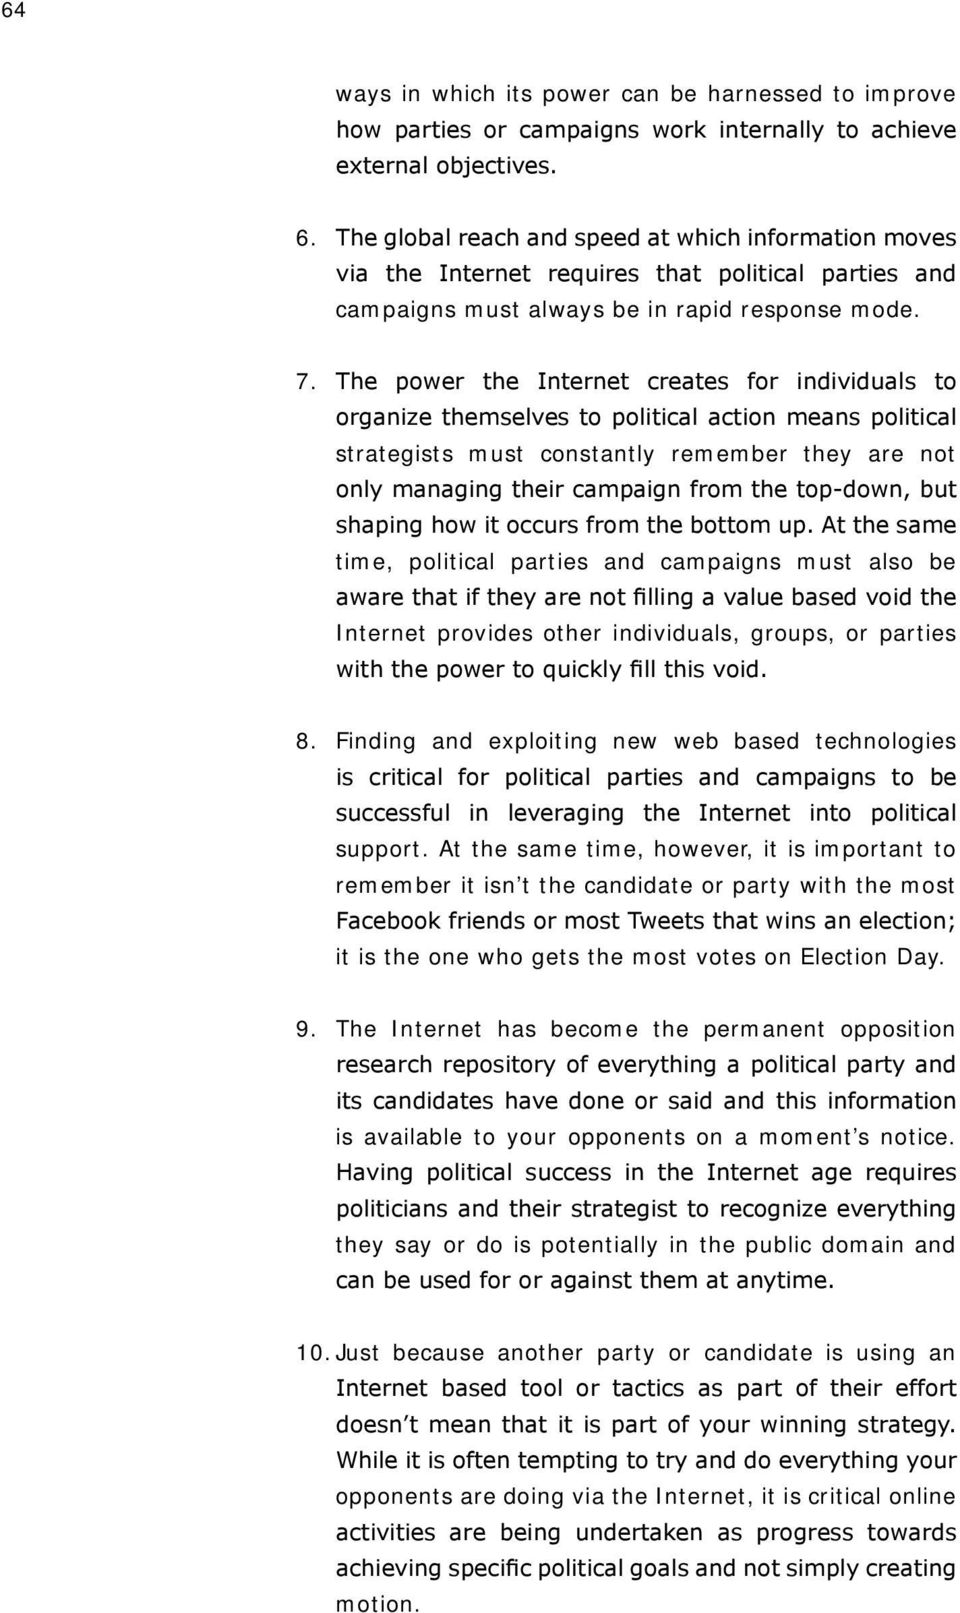 The power the Internet creates for individuals to organize themselves to political action means political strategists must constantly remember they are not only managing their campaign from the